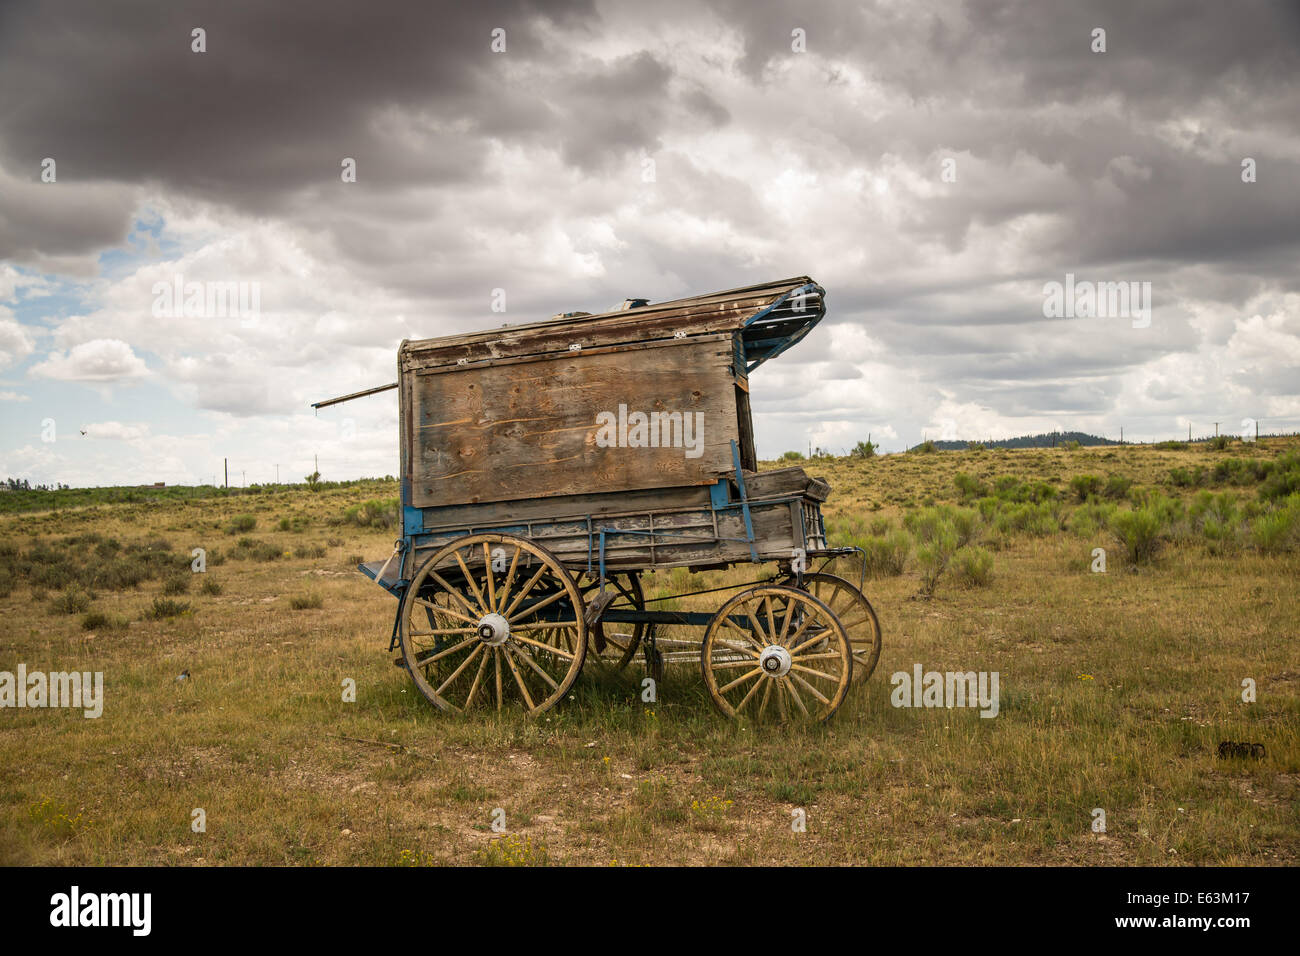 An old west sheriff's wagon sits on the lonesome frontier prairie as storm clouds gather in the distance. Stock Photo